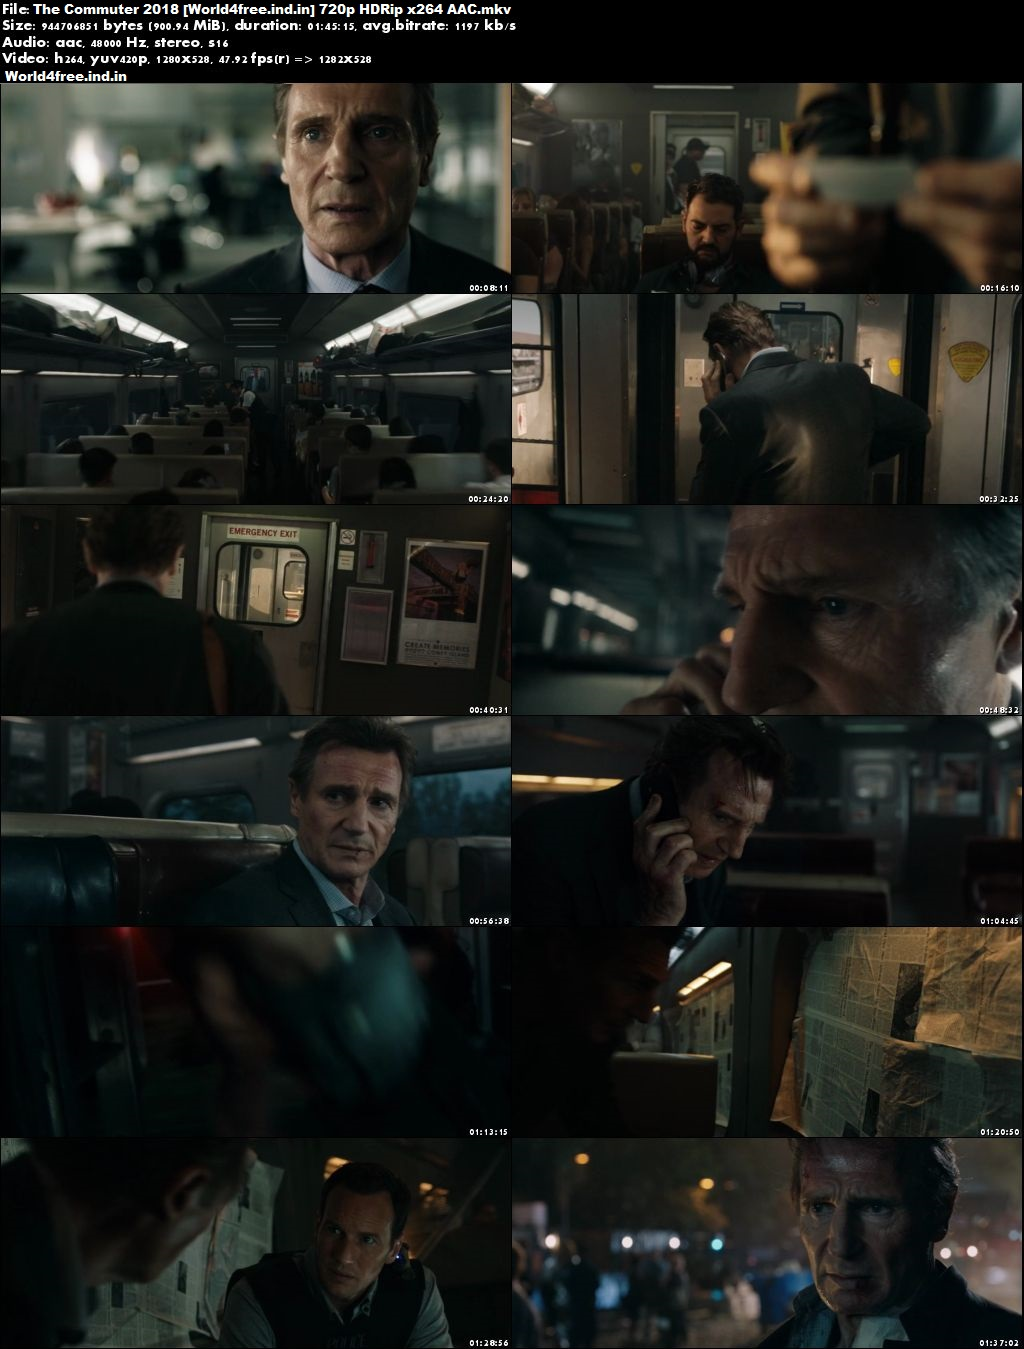 The Commuter 2018 world4free.ind.in Full HDRip 720p English Movie Download